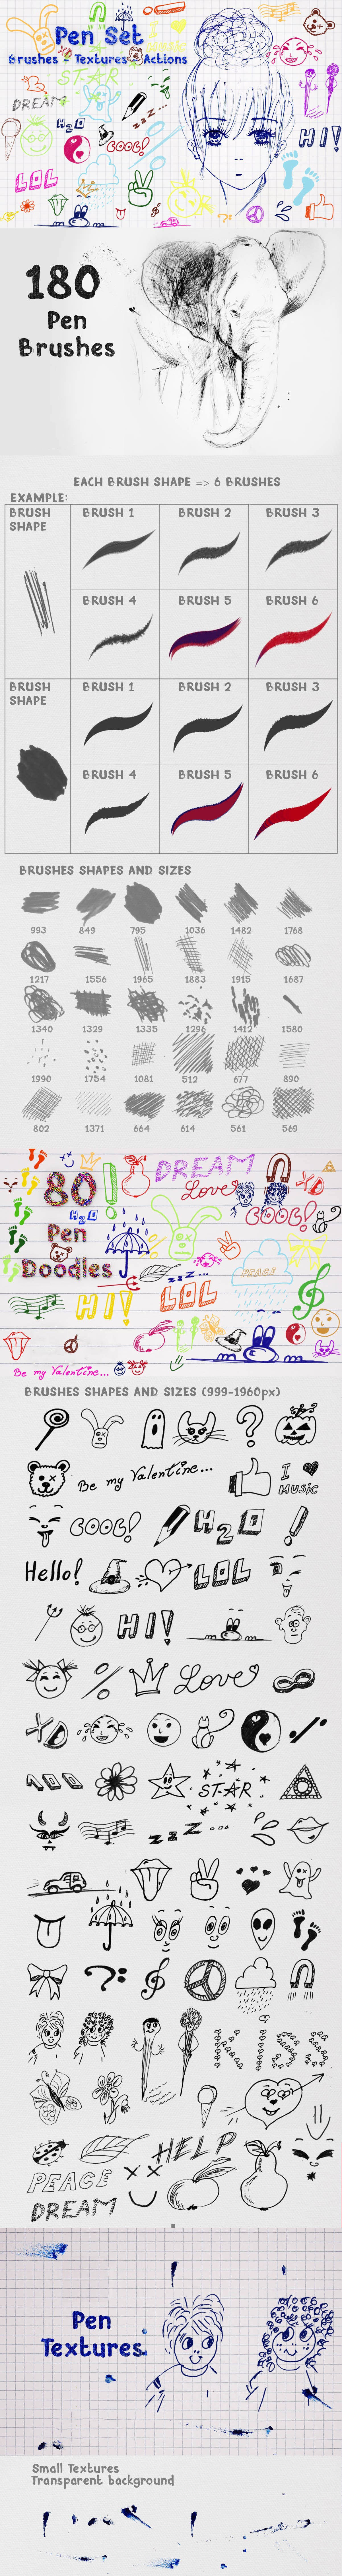 2500+ Artistic Brushes + Extra Assets - 06 Pen